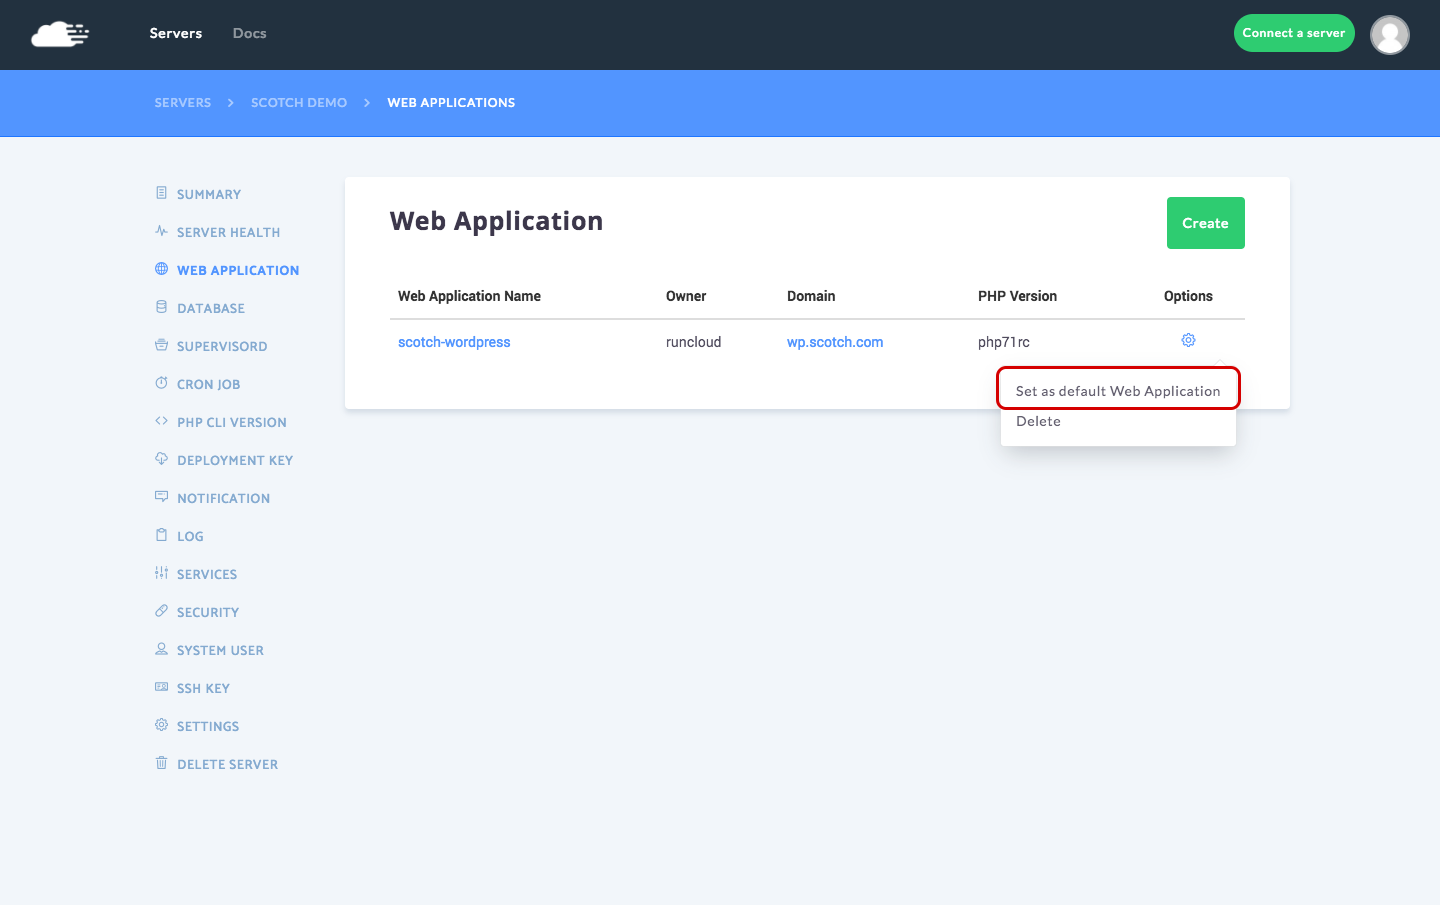 Set web application as default